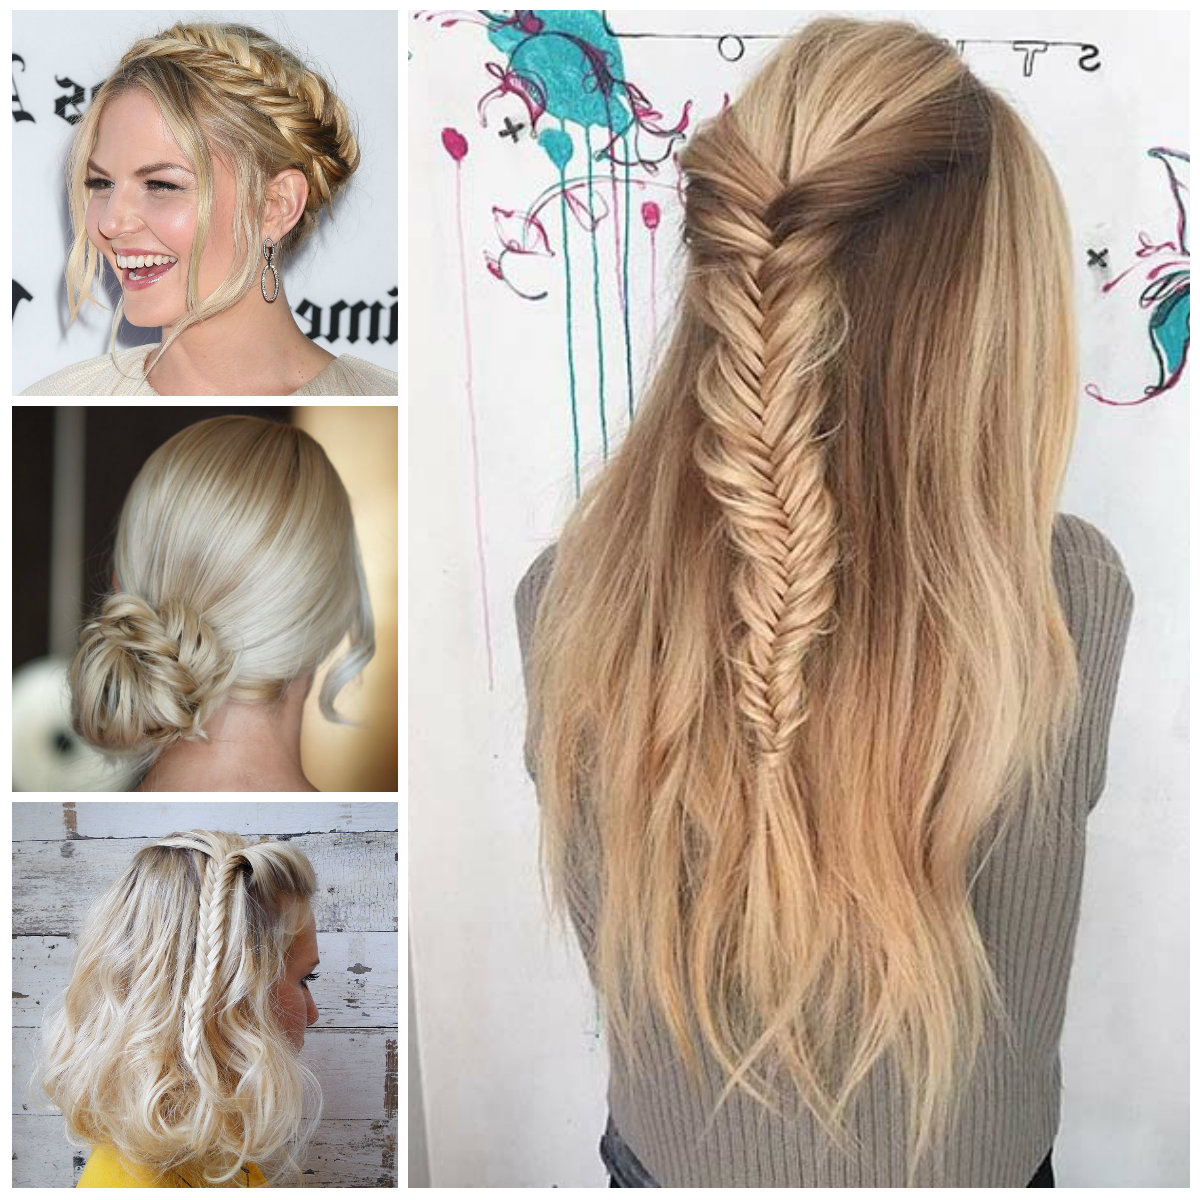 2019 Haircuts With Regard To Most Up To Date Elegant Blonde Mermaid Braid Hairstyles (View 1 of 20)